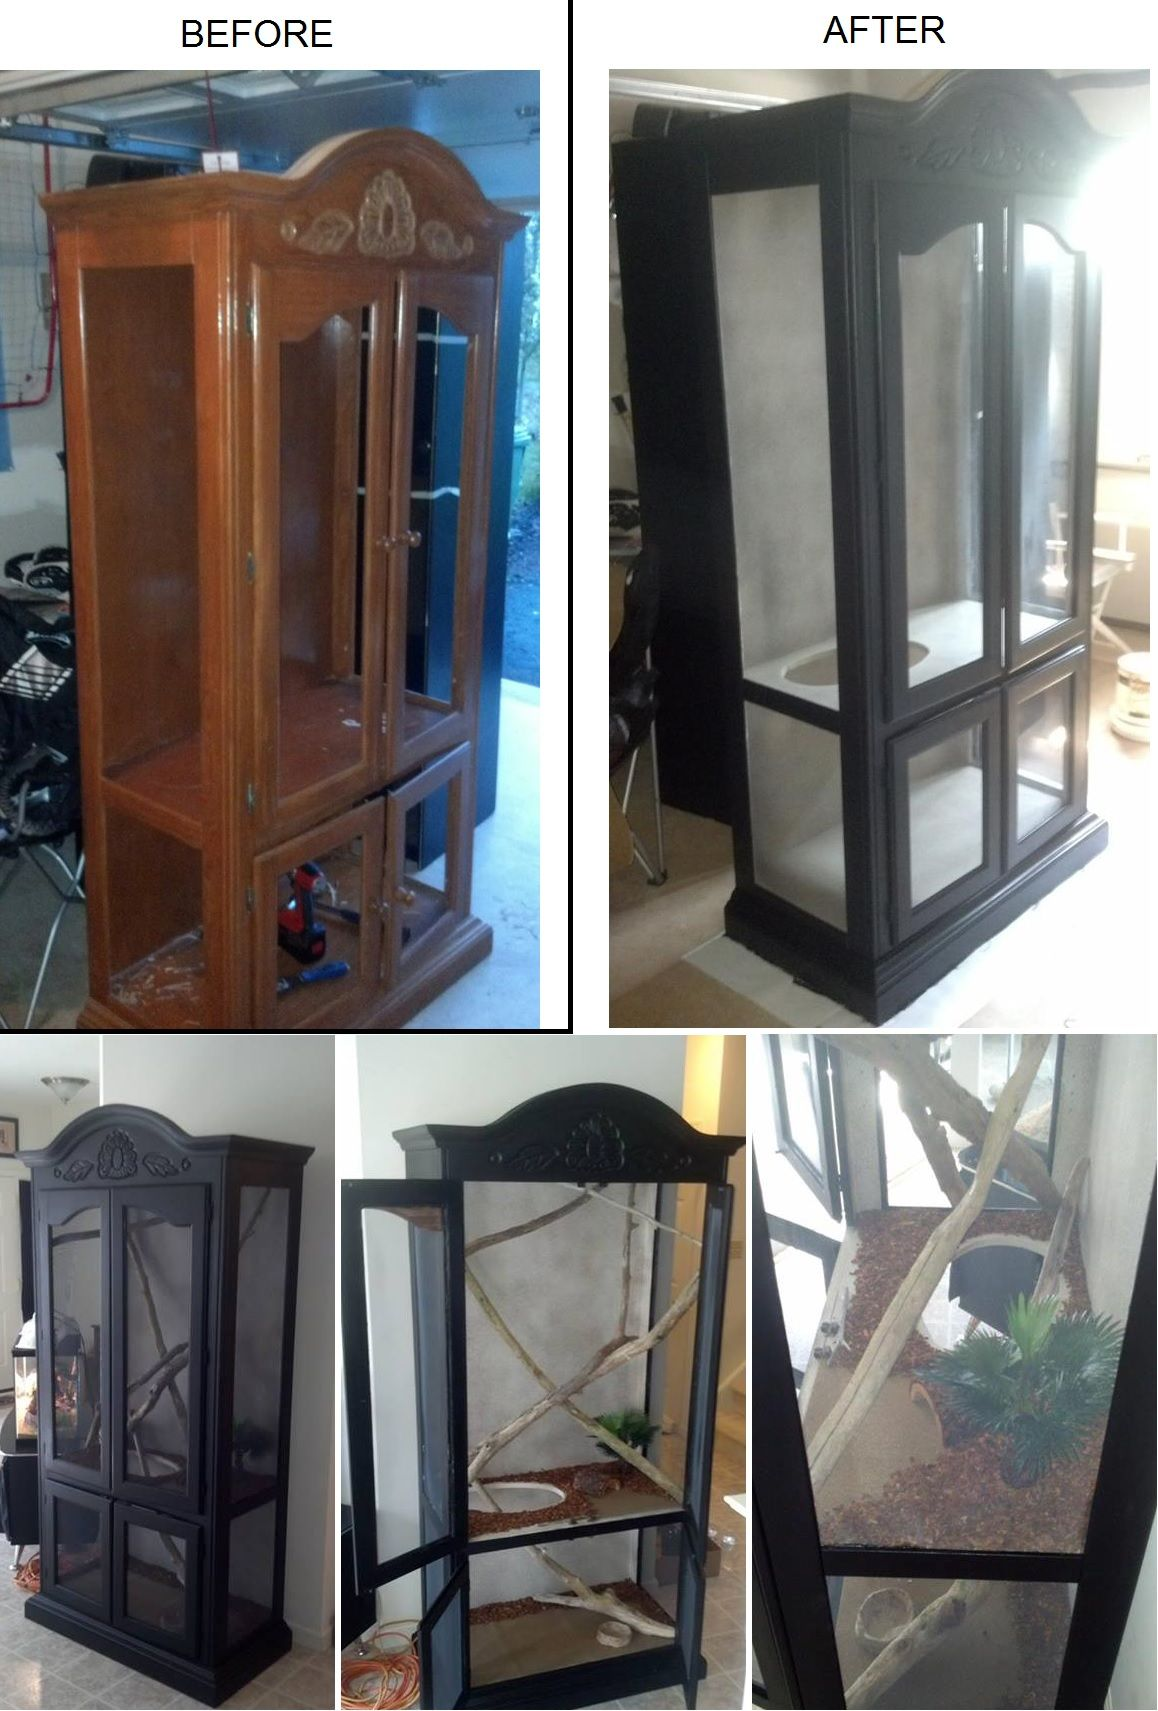 Turning an old curio cabinet into a custom reptile enclosure to look